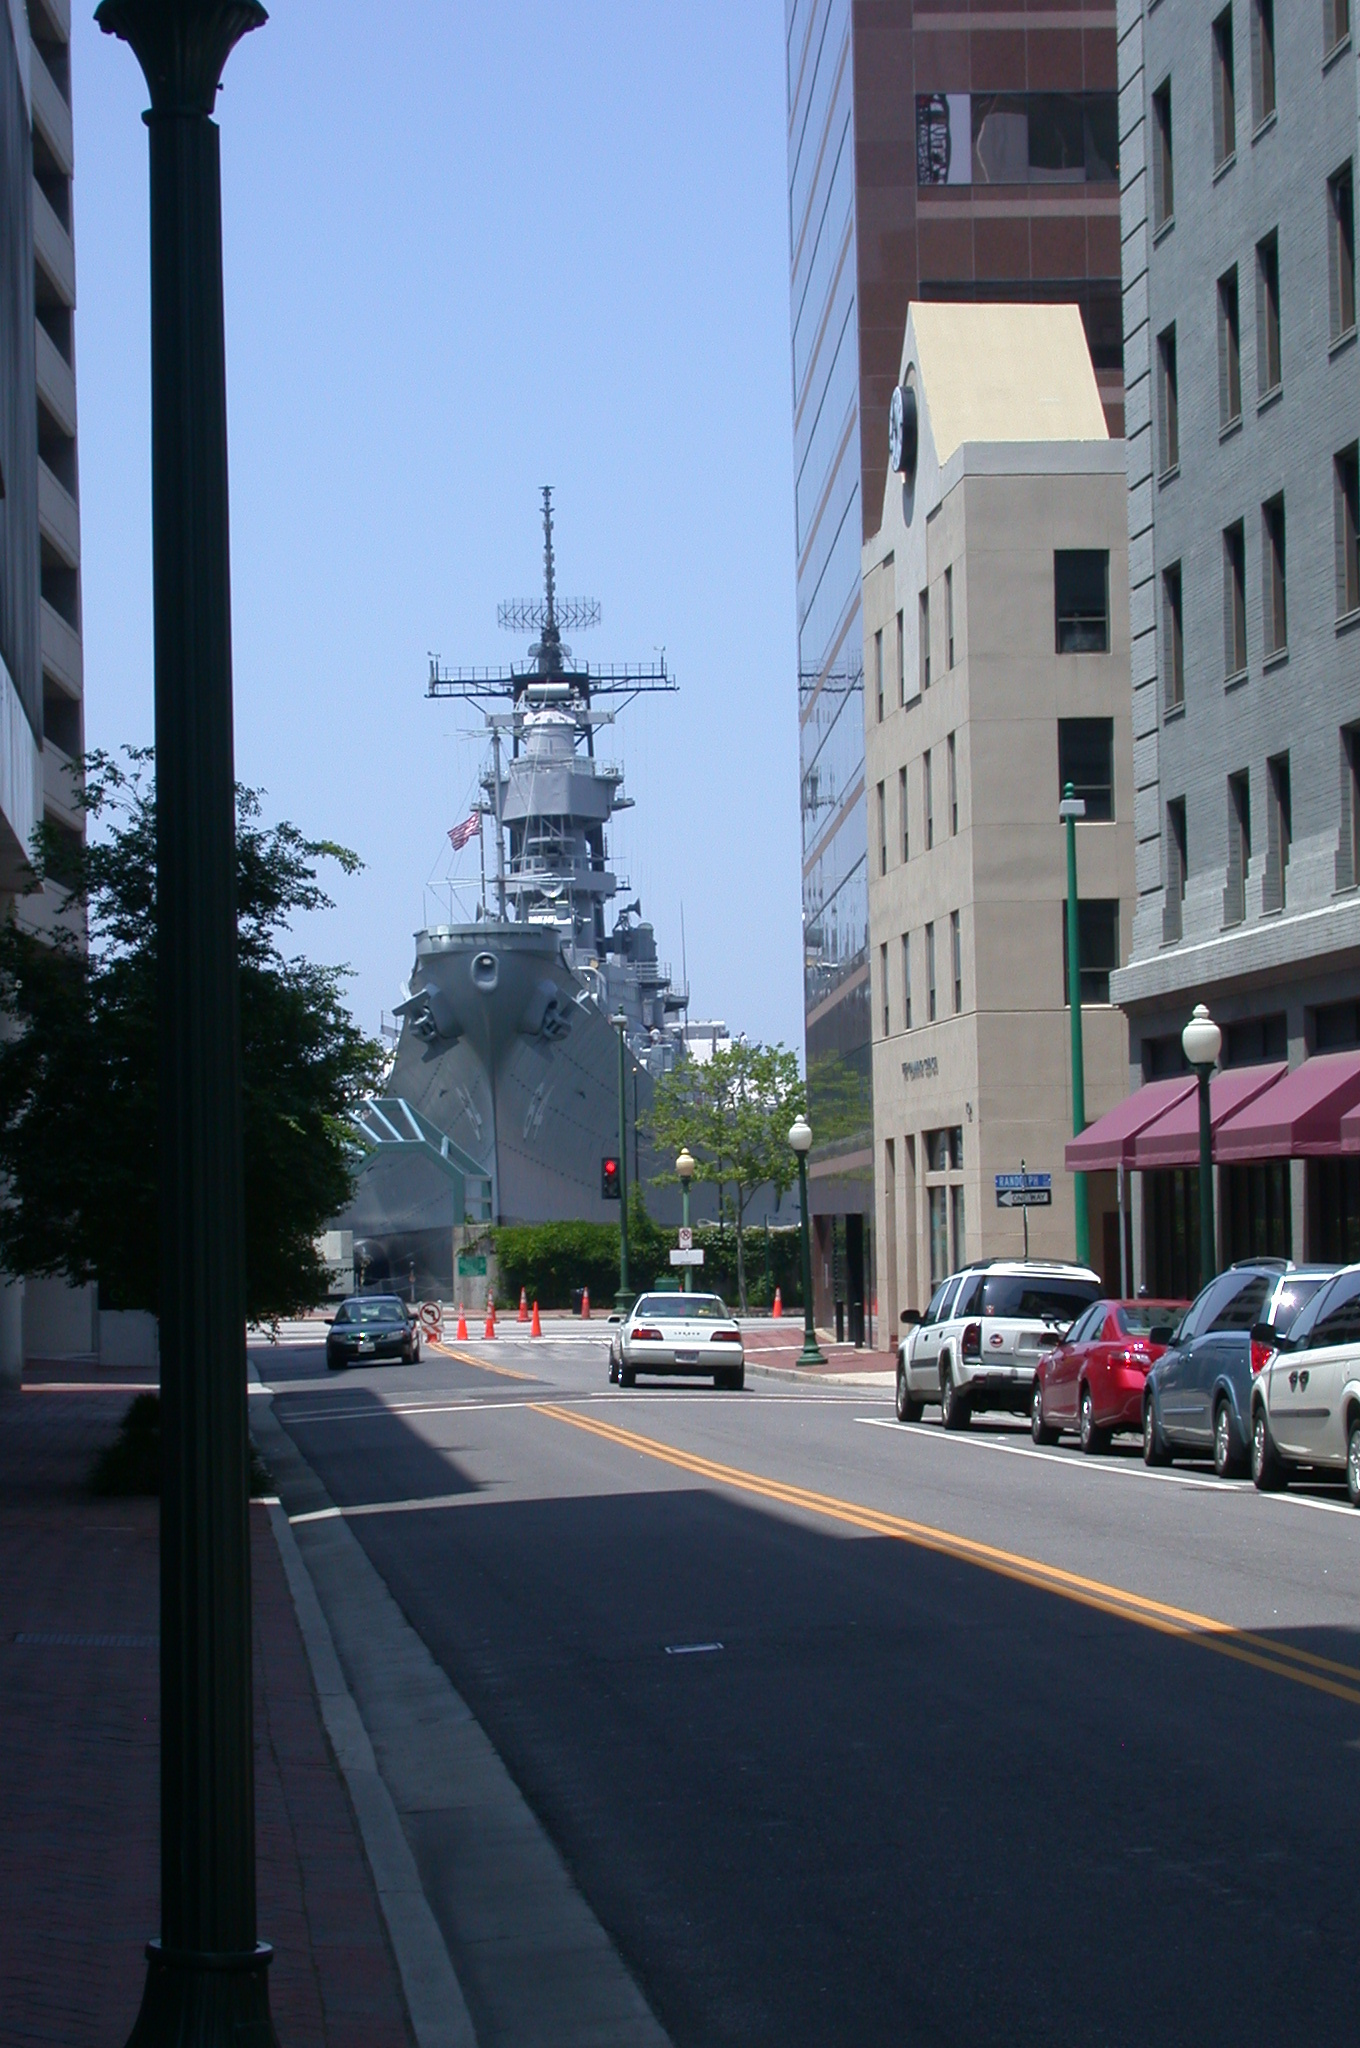 DSCN0106.jpg - ...the USS Wisconsin, a decommissioned battleship.